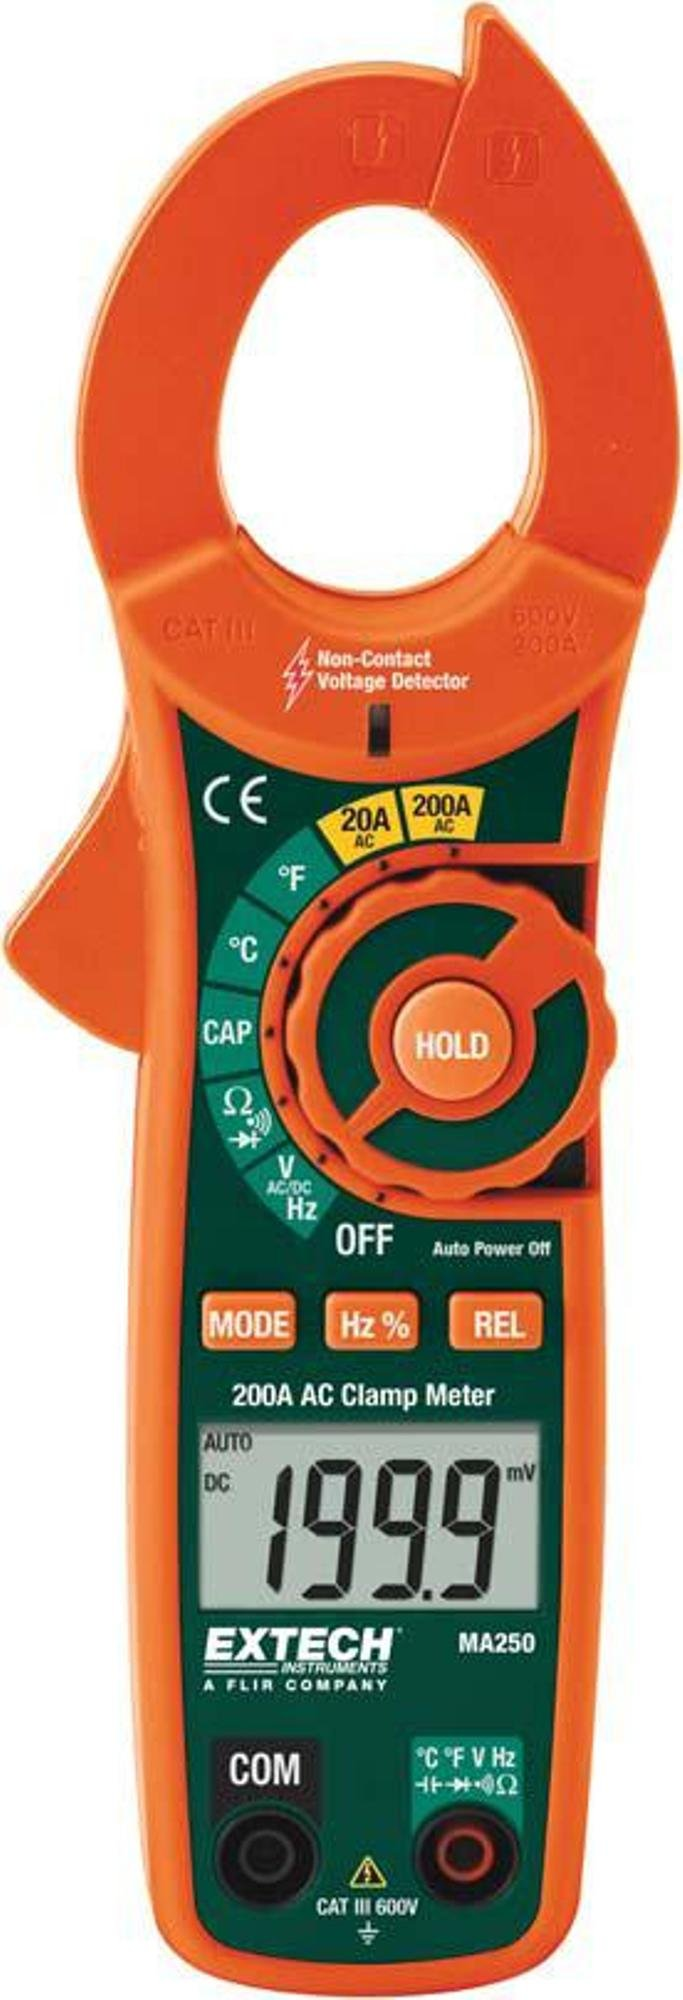 Extech Instruments MA250 Compact Clamp Meter